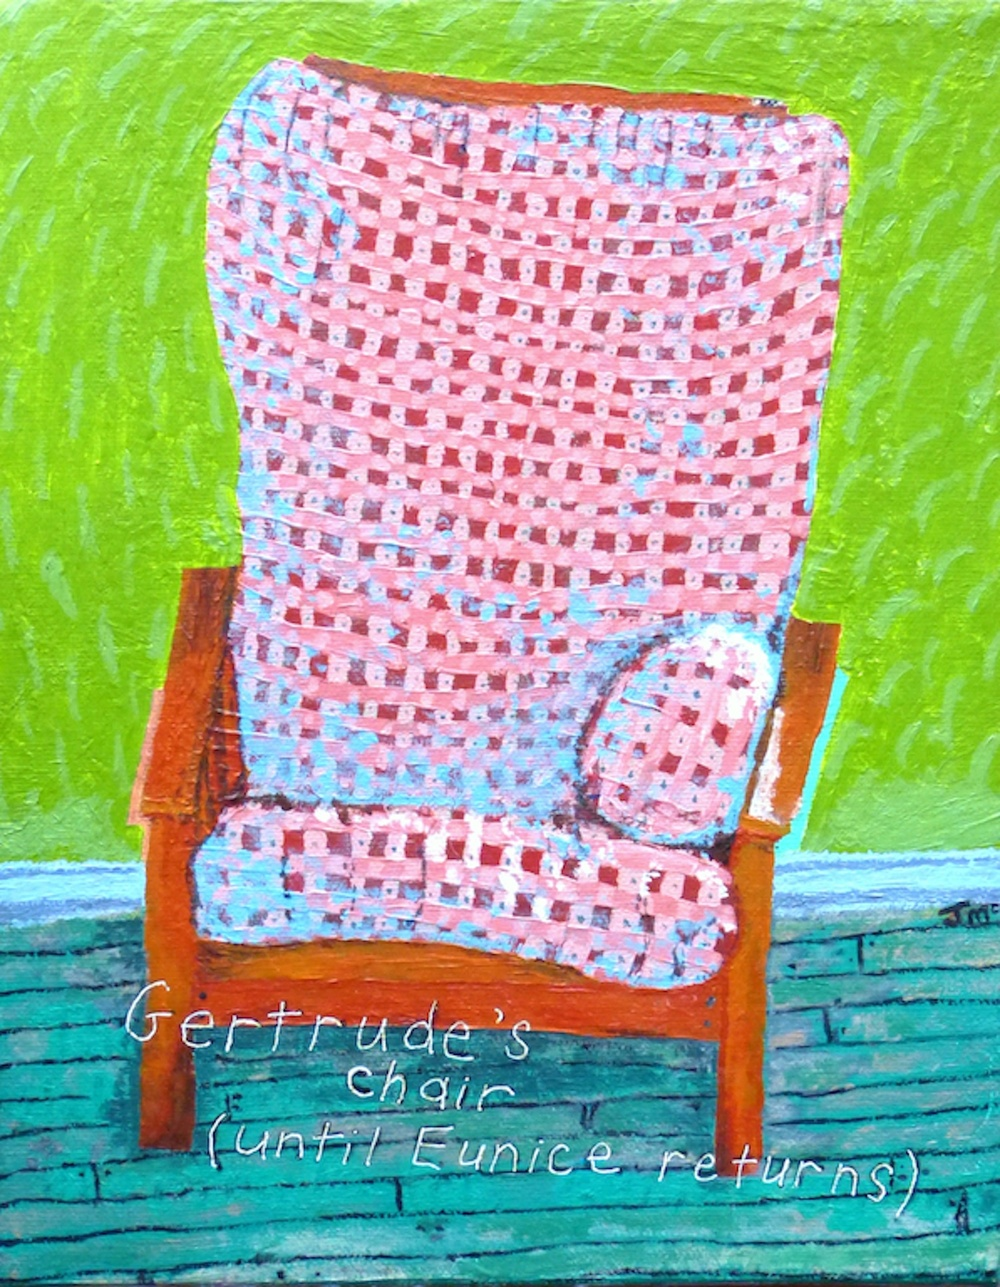 Gertrude's Chair